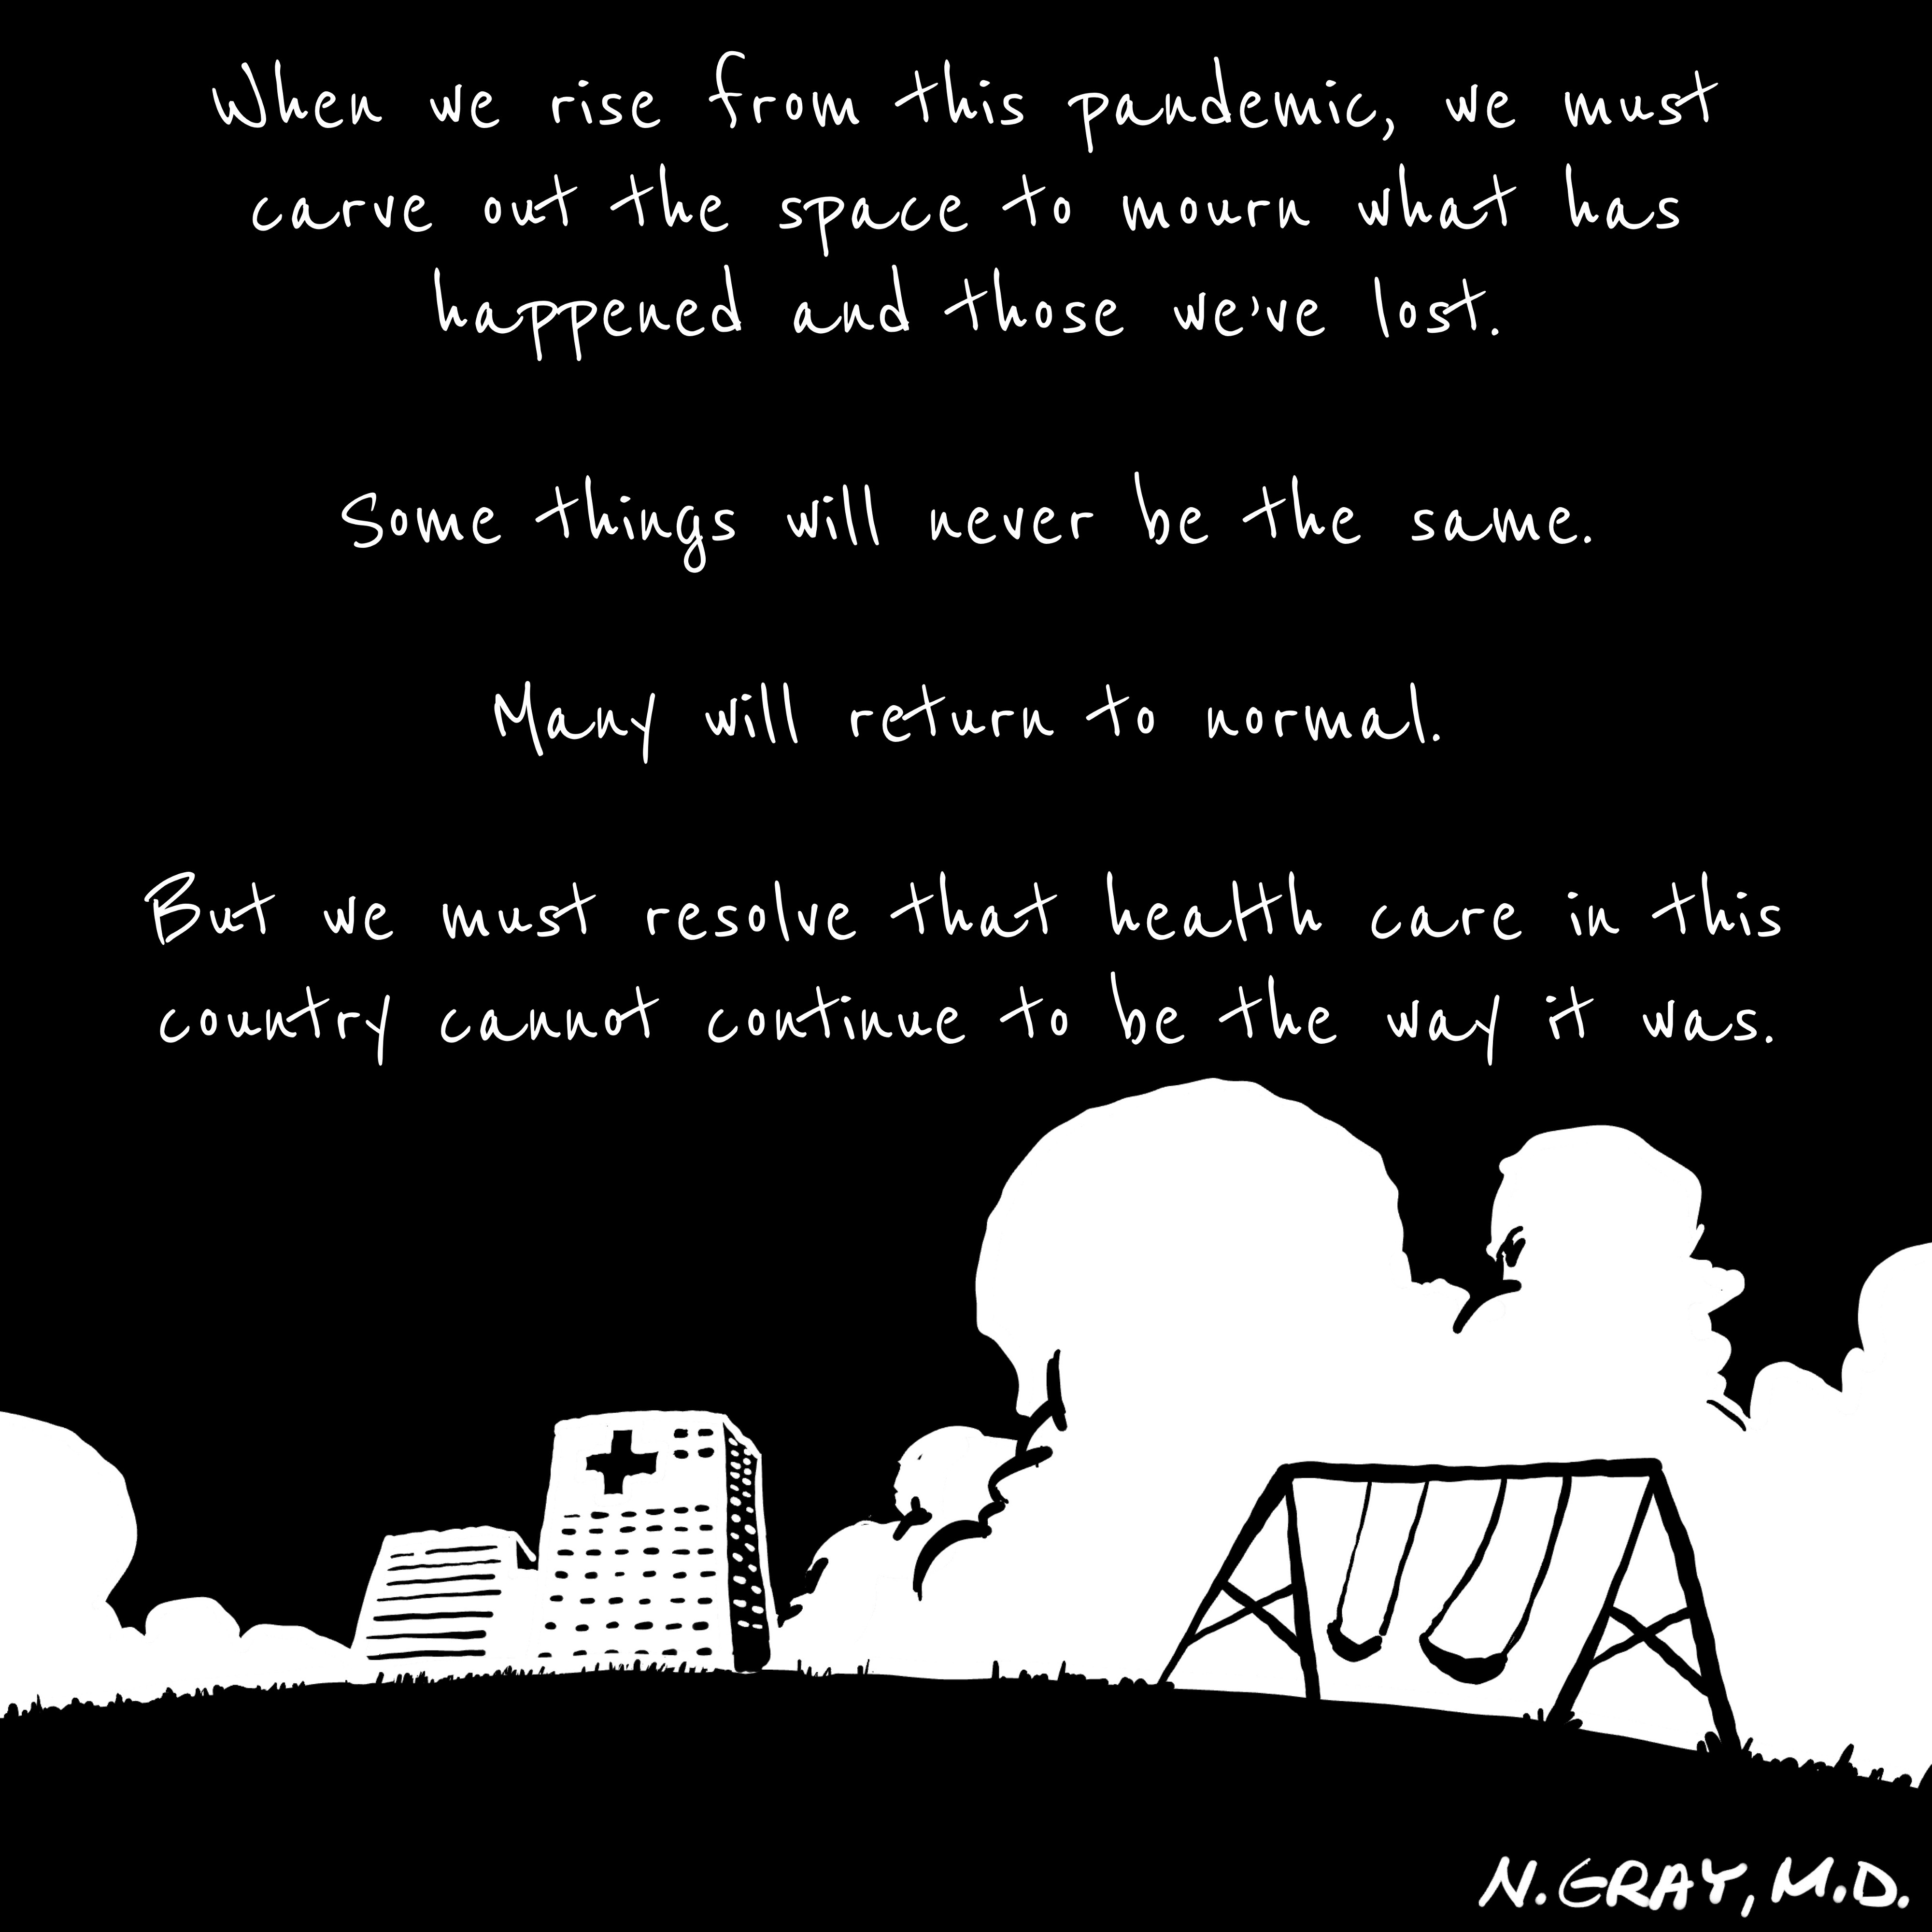 Playground and hospital—When we rise from pandemic, we must resolve that healthcare cannot remain how it was.